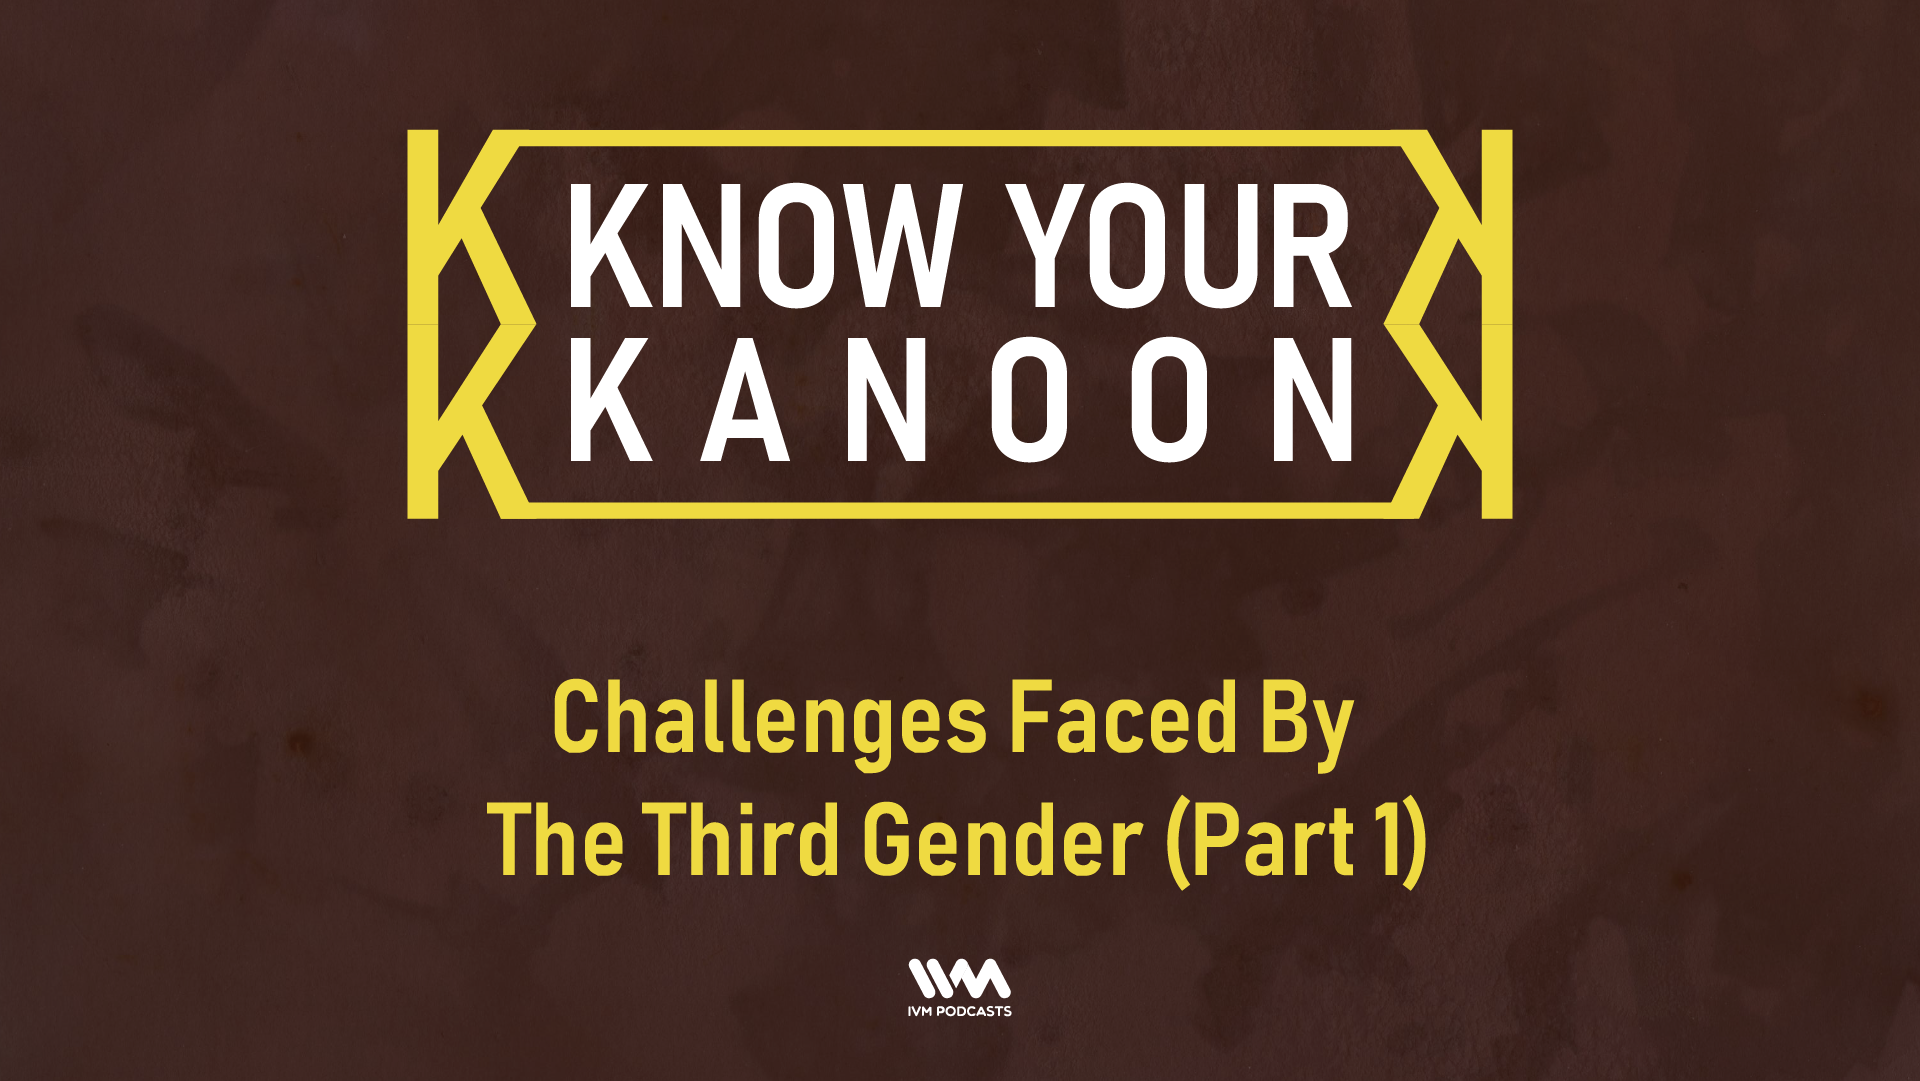 KnowYourKanoonEpisode12.png